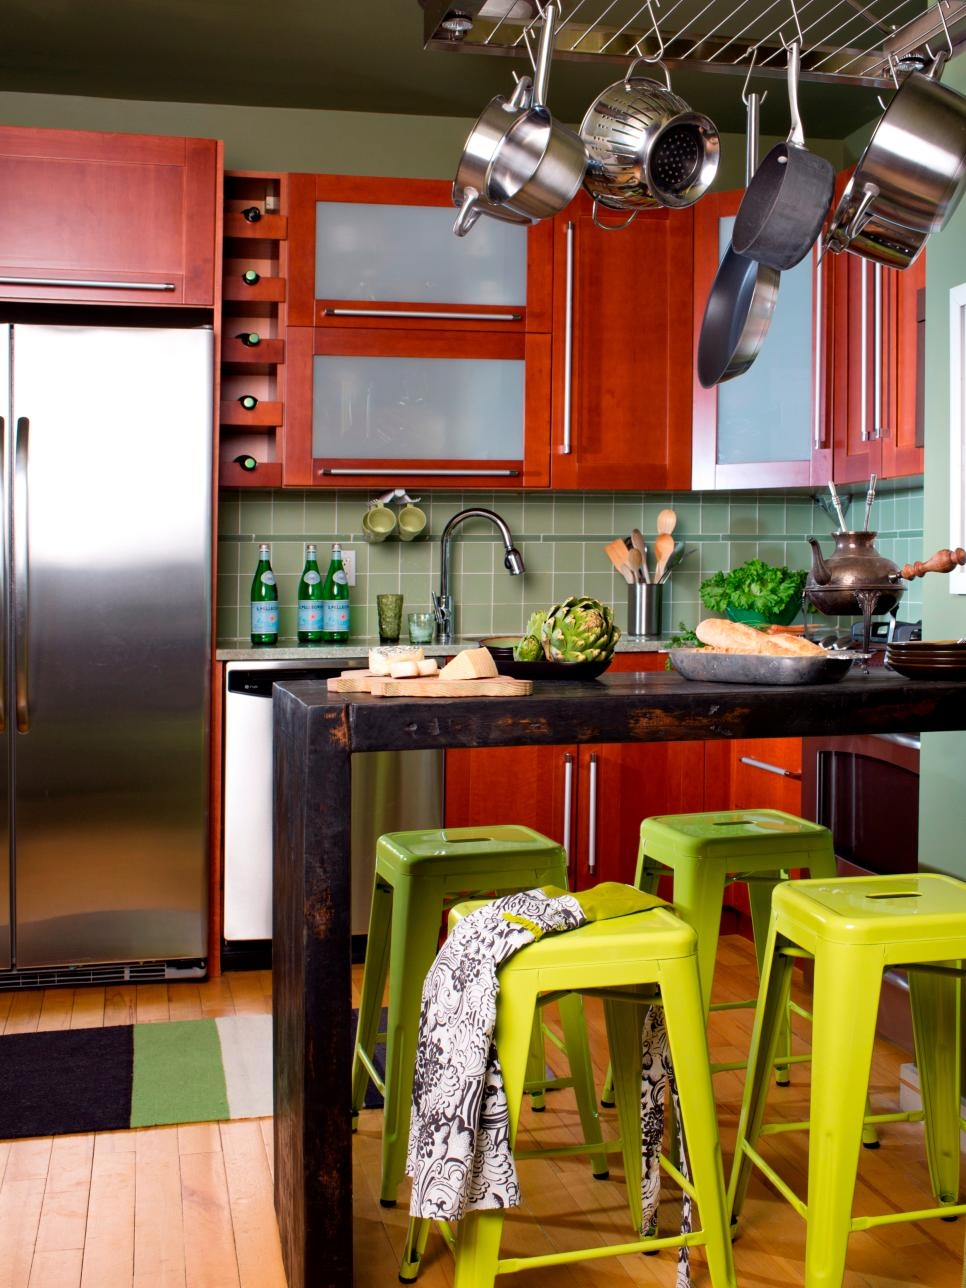 Space Saving Kitchen Cabinet Design